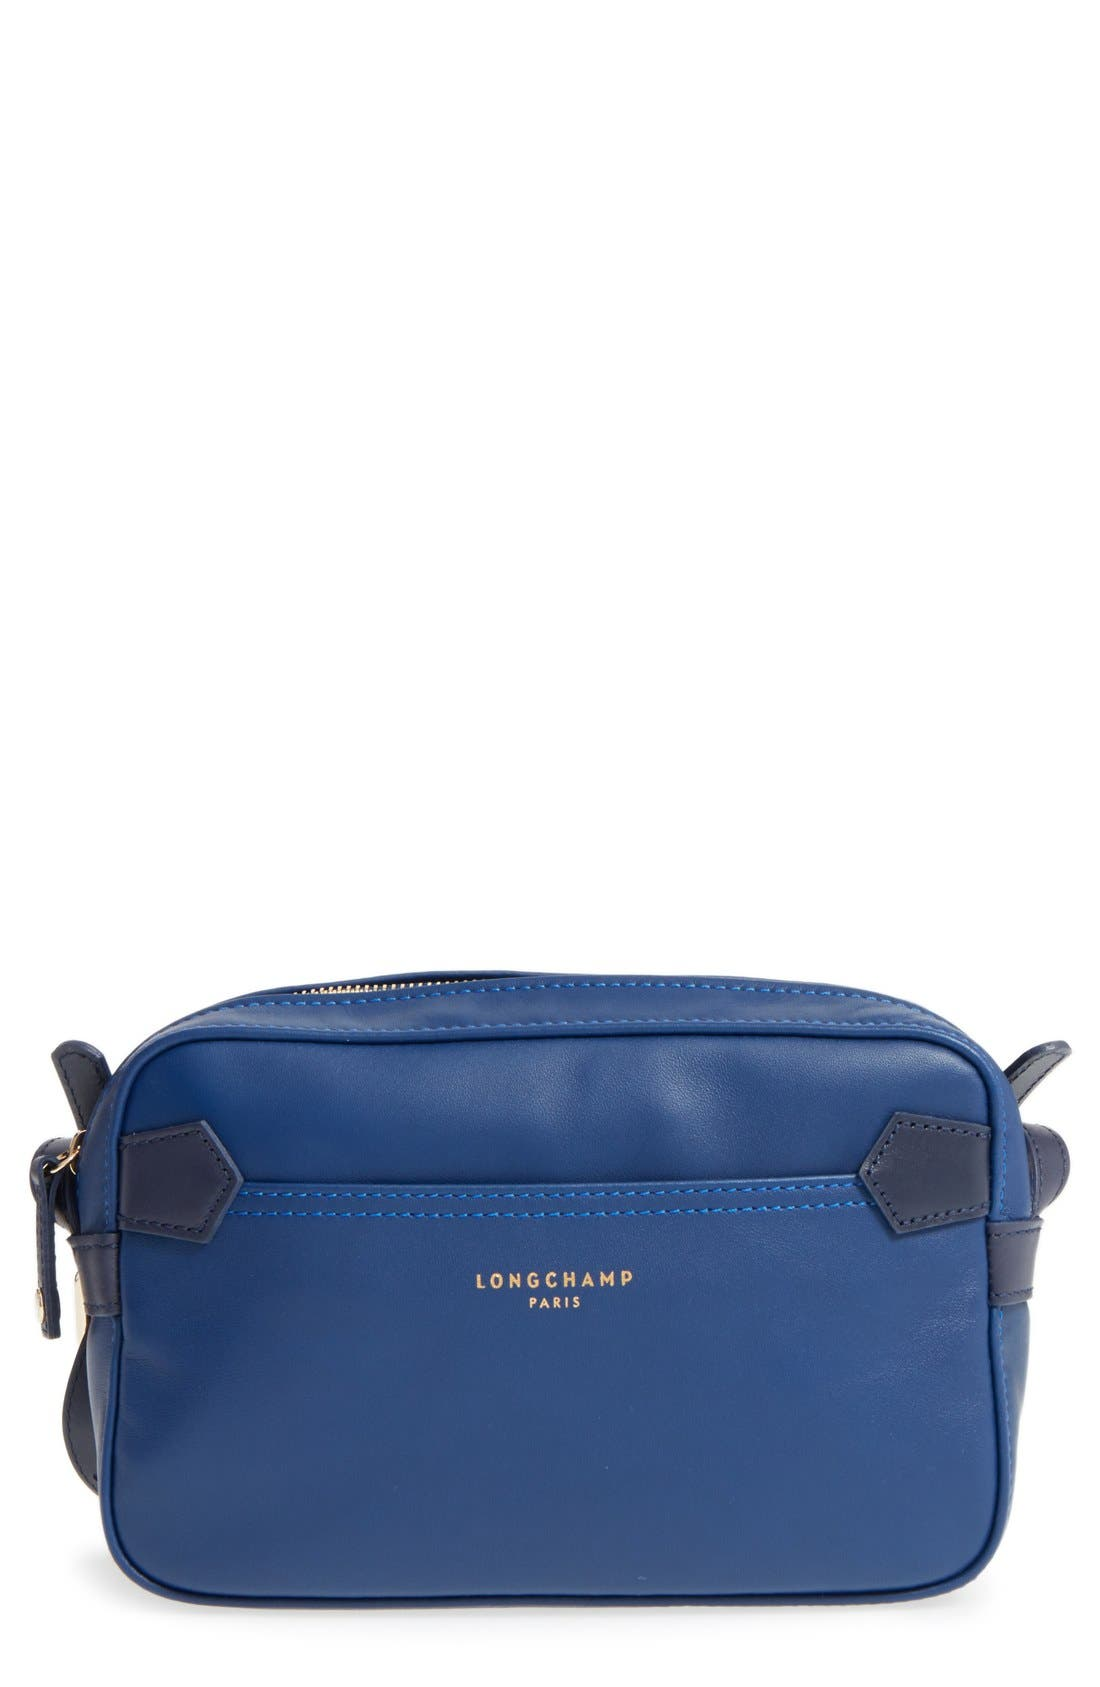 '2.0' Two-Tone Leather Crossbody Bag,                         Main,                         color, Blue/ Navy